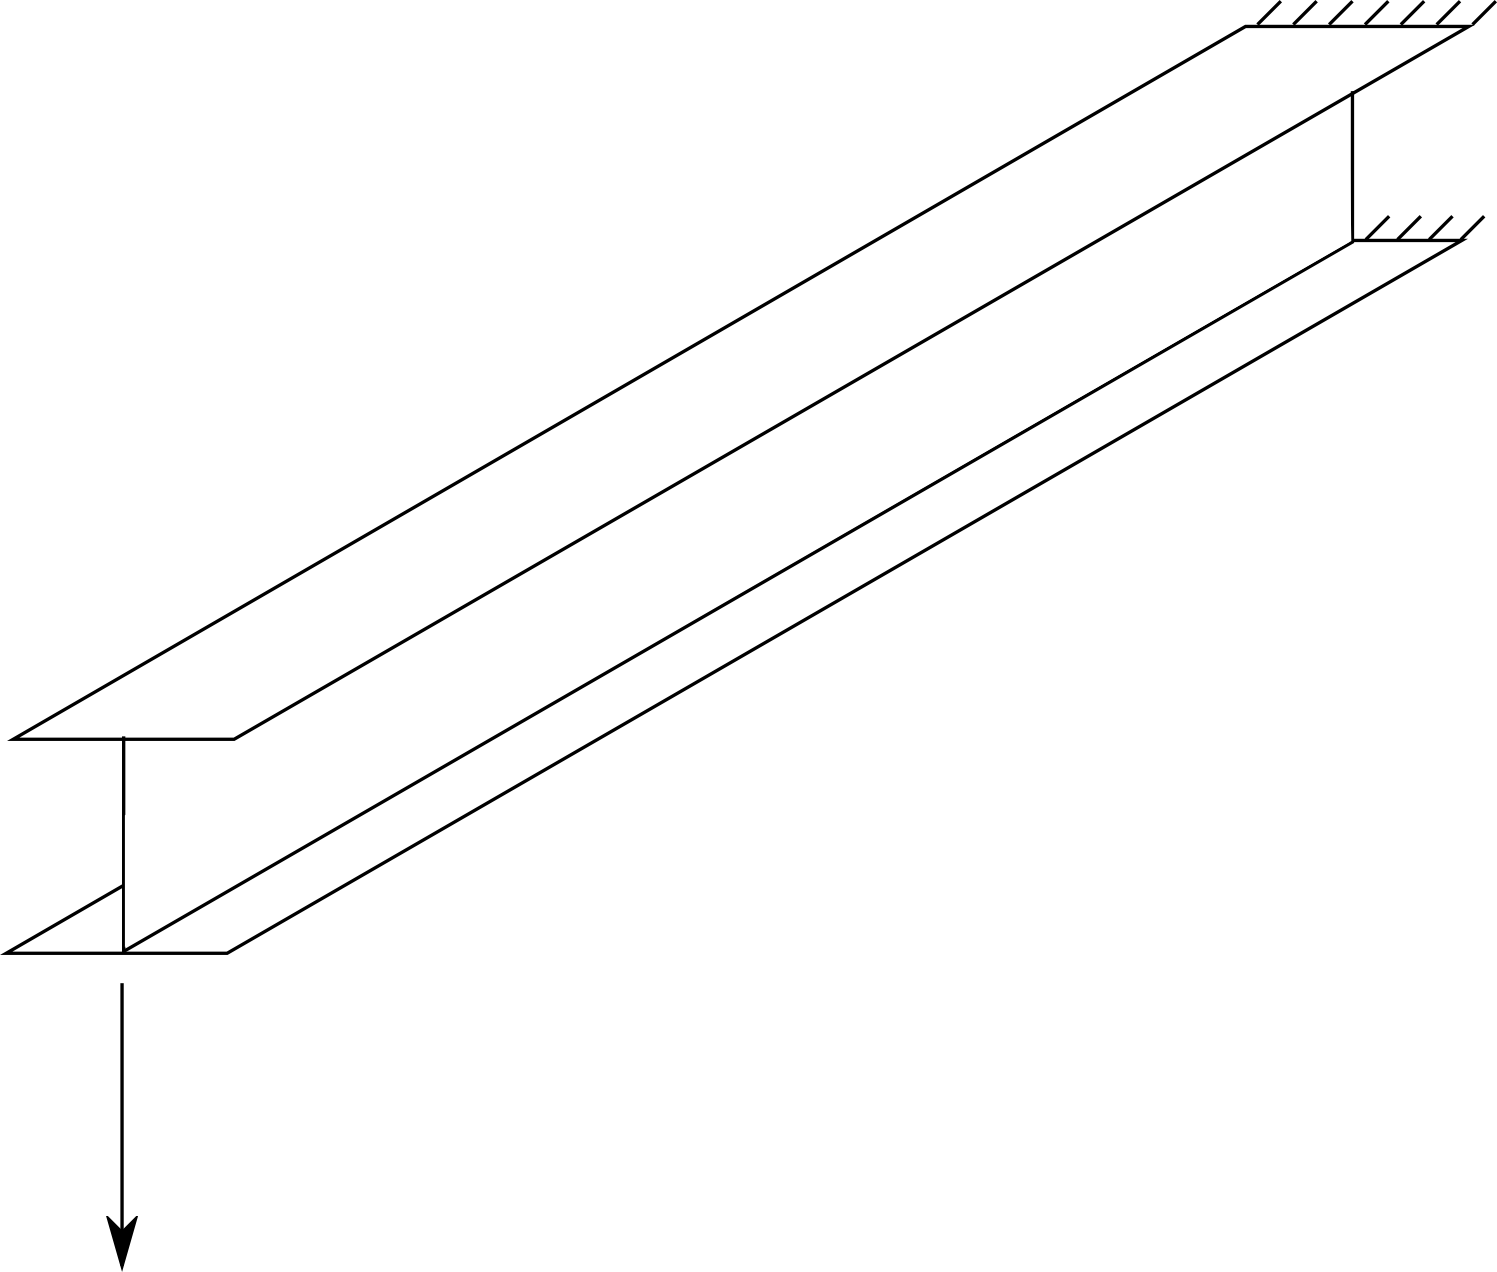 Cantilever beam with I-section